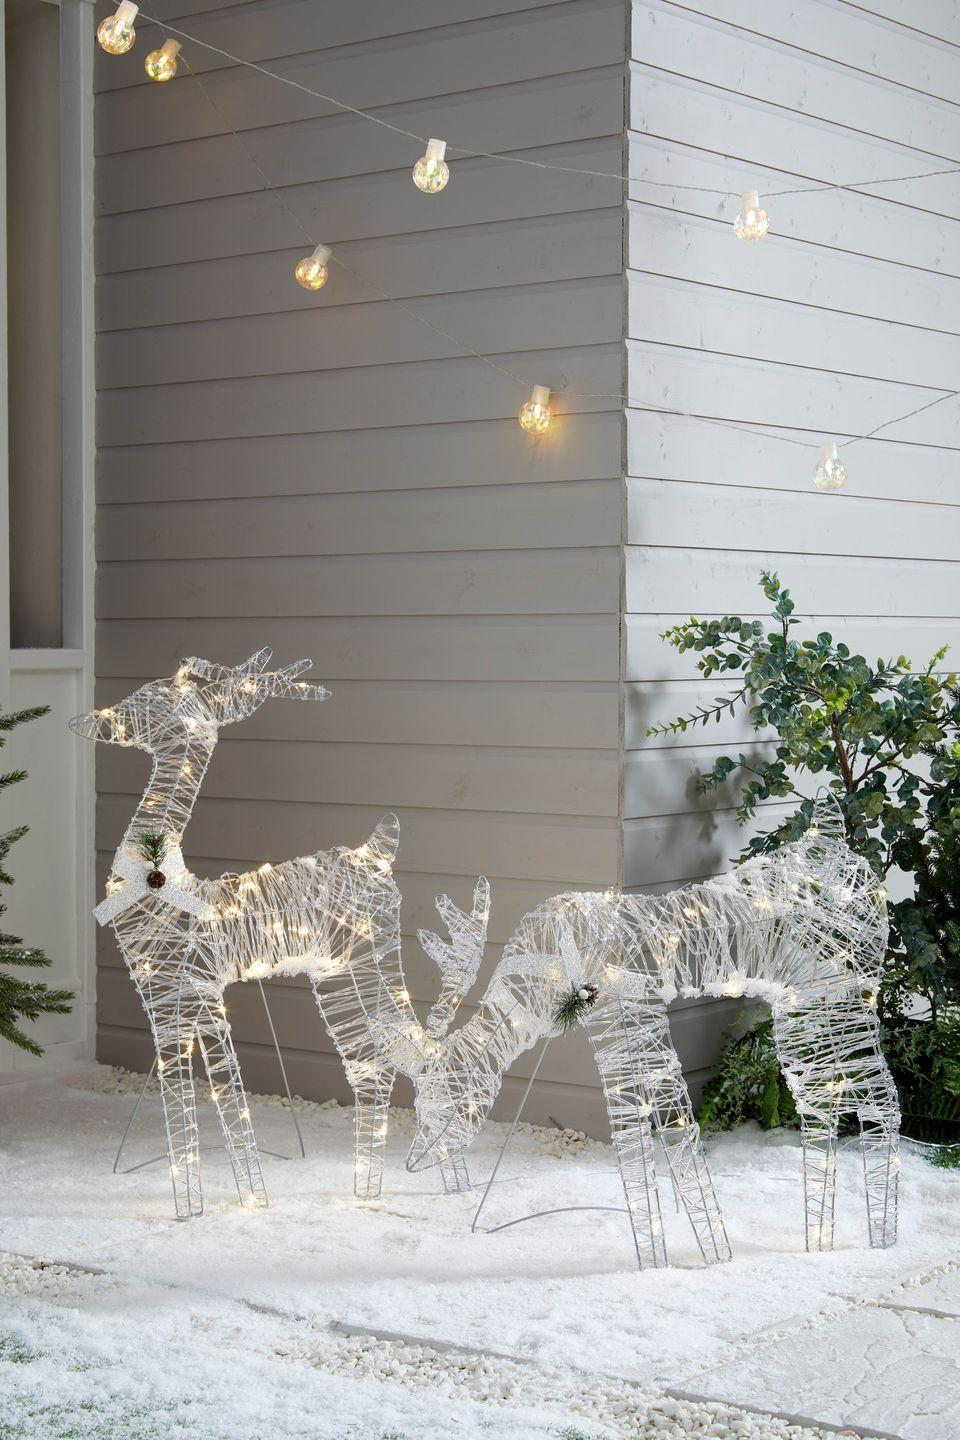 """<p>From reindeers to sparkling <a href=""""https://www.housebeautiful.com/uk/lifestyle/storage/a34833327/untangle-christmas-lights/"""" rel=""""nofollow noopener"""" target=""""_blank"""" data-ylk=""""slk:lights"""" class=""""link rapid-noclick-resp"""">lights</a>, bring the festive spirit outside with Dunelm's range of garden decorations. It's perfect for putting on an amazing display for passersby. </p>"""